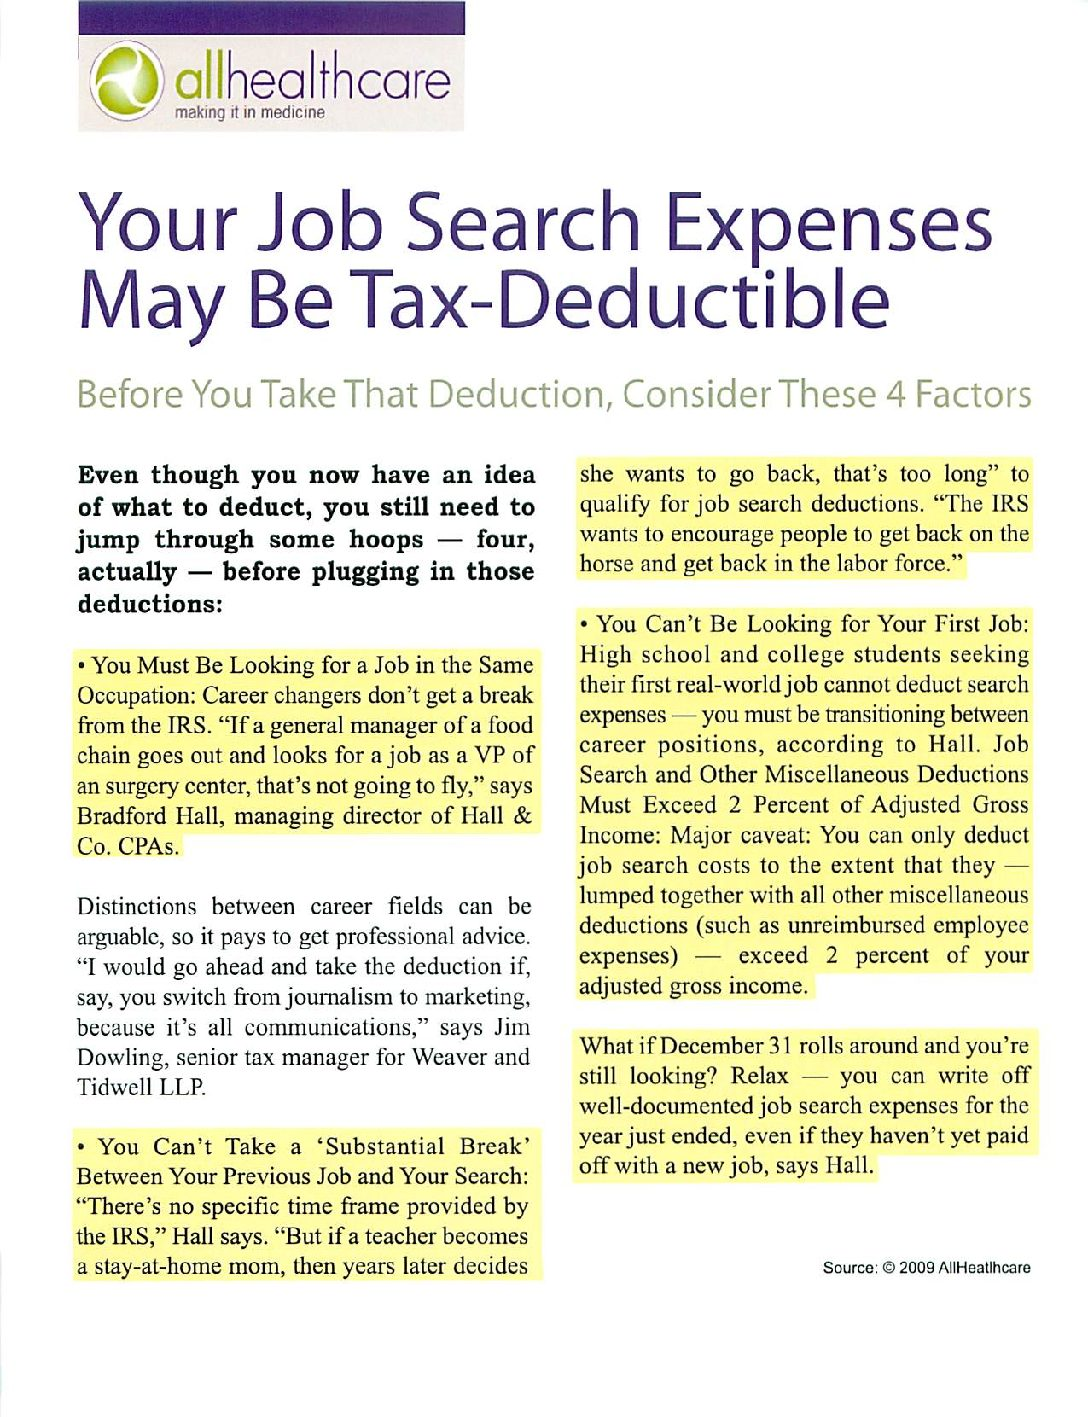 Job Search Expenses may be Tax Deductible – Hall & Company